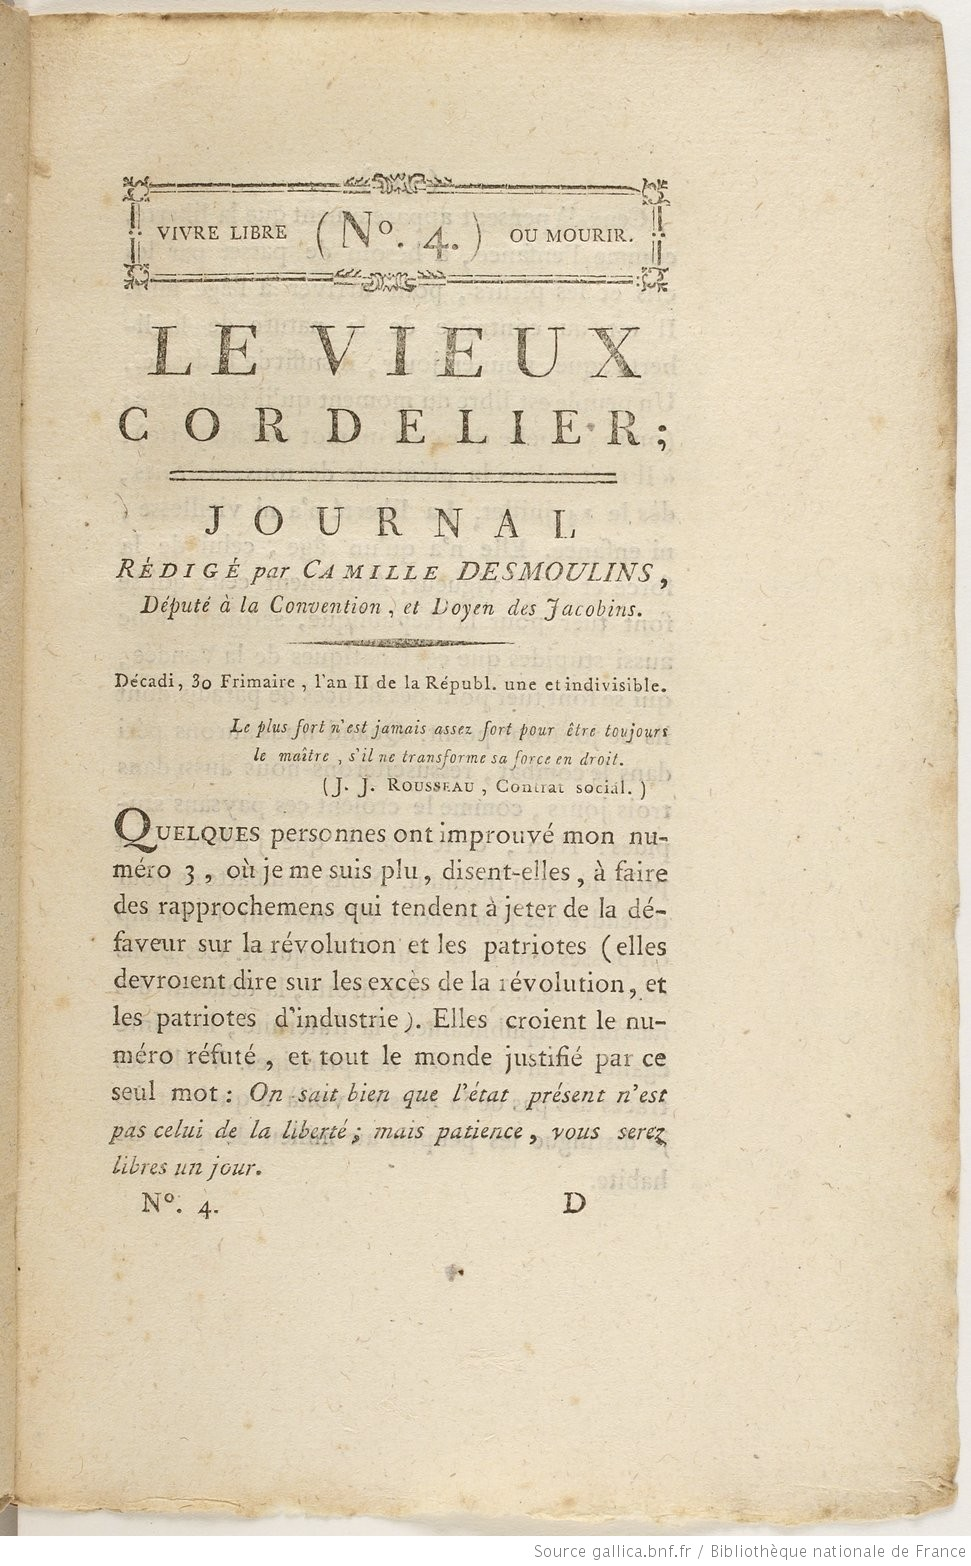 Camille Desmoulins,  Le Vieux Cordelier , no. 4. Taken from Gallica, Bibliothèque nationale de France, http://gallica.bnf.fr/ark:/12148/